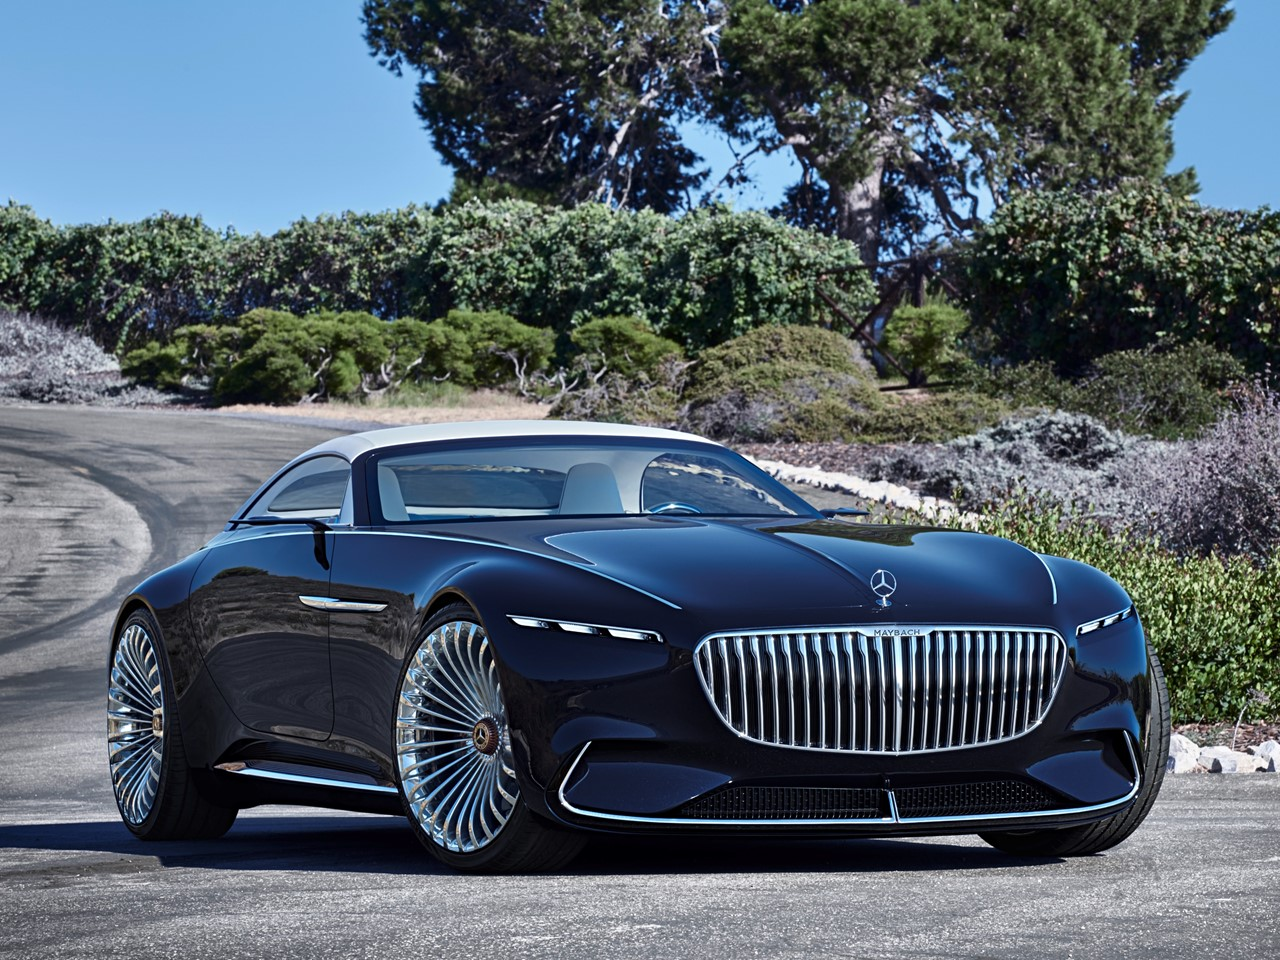 Mercedes-Maybach 2